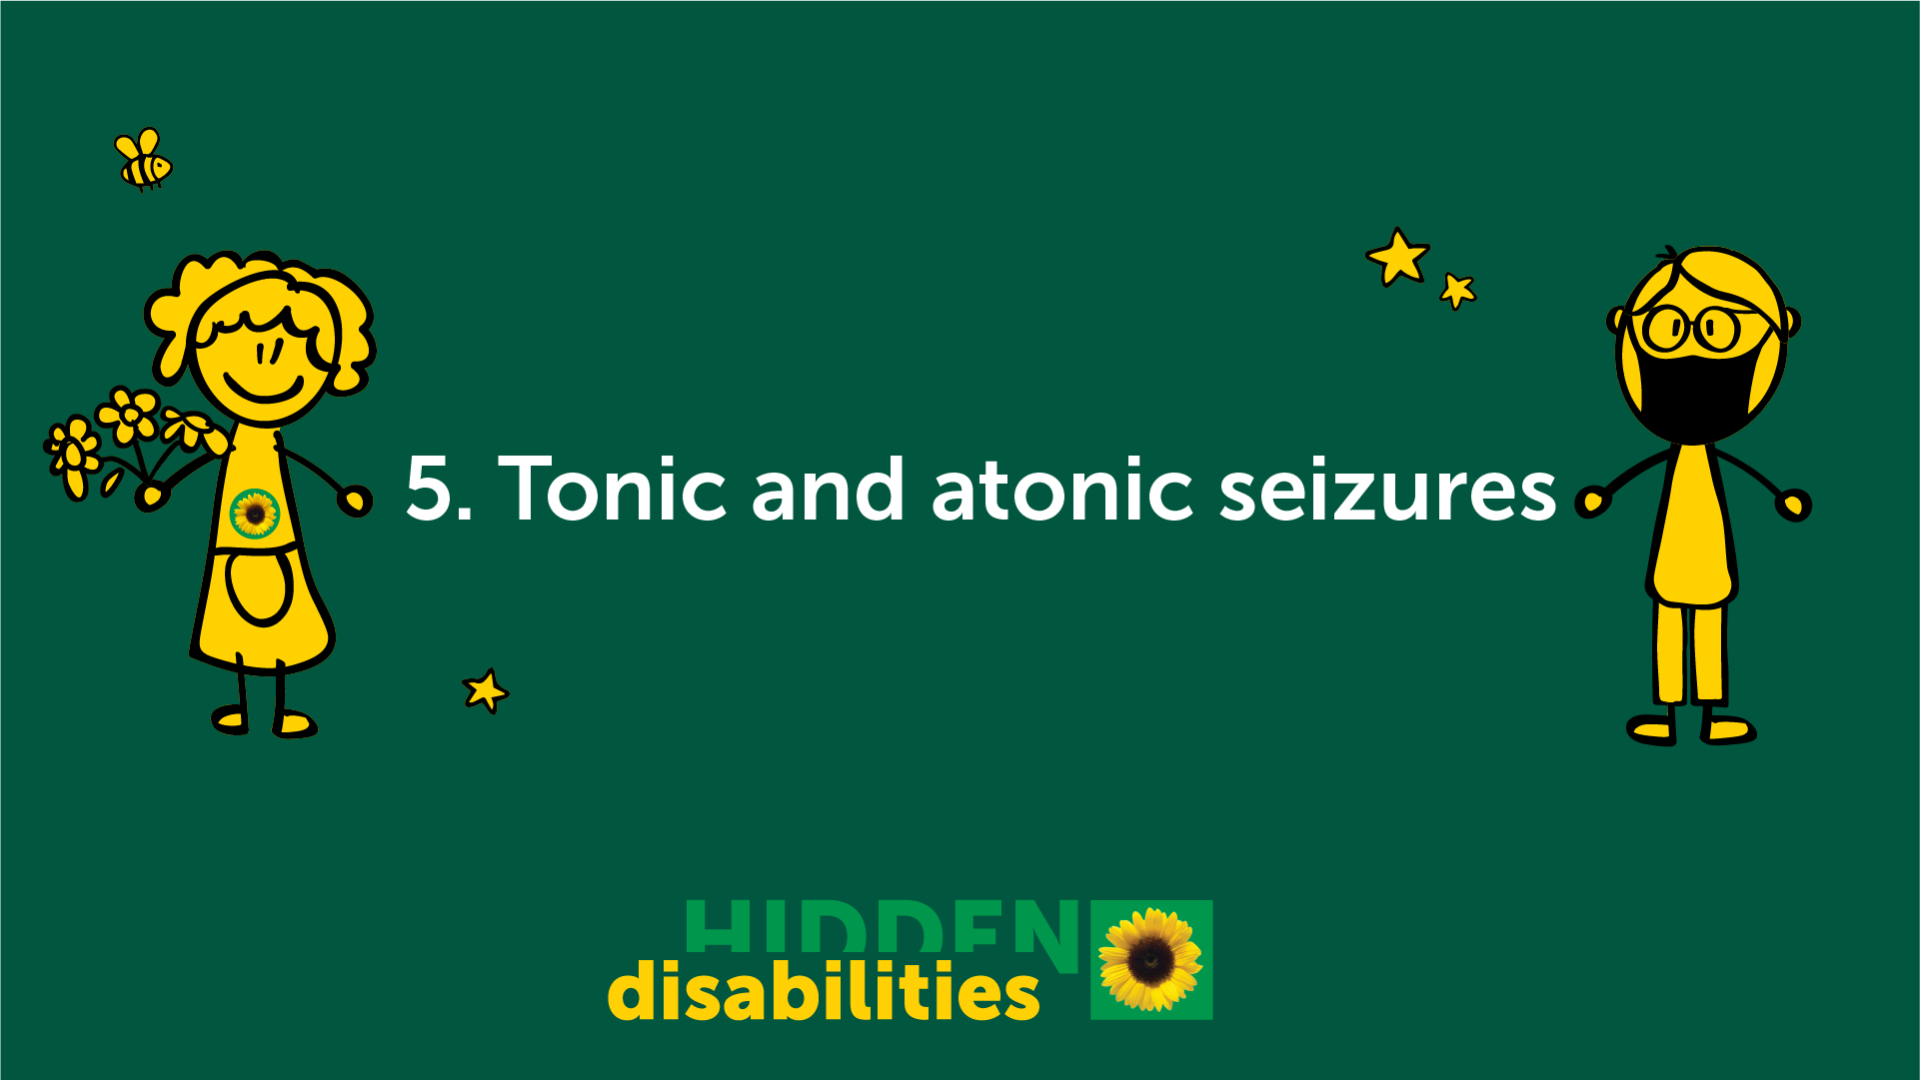 Tonic and atonic seizures